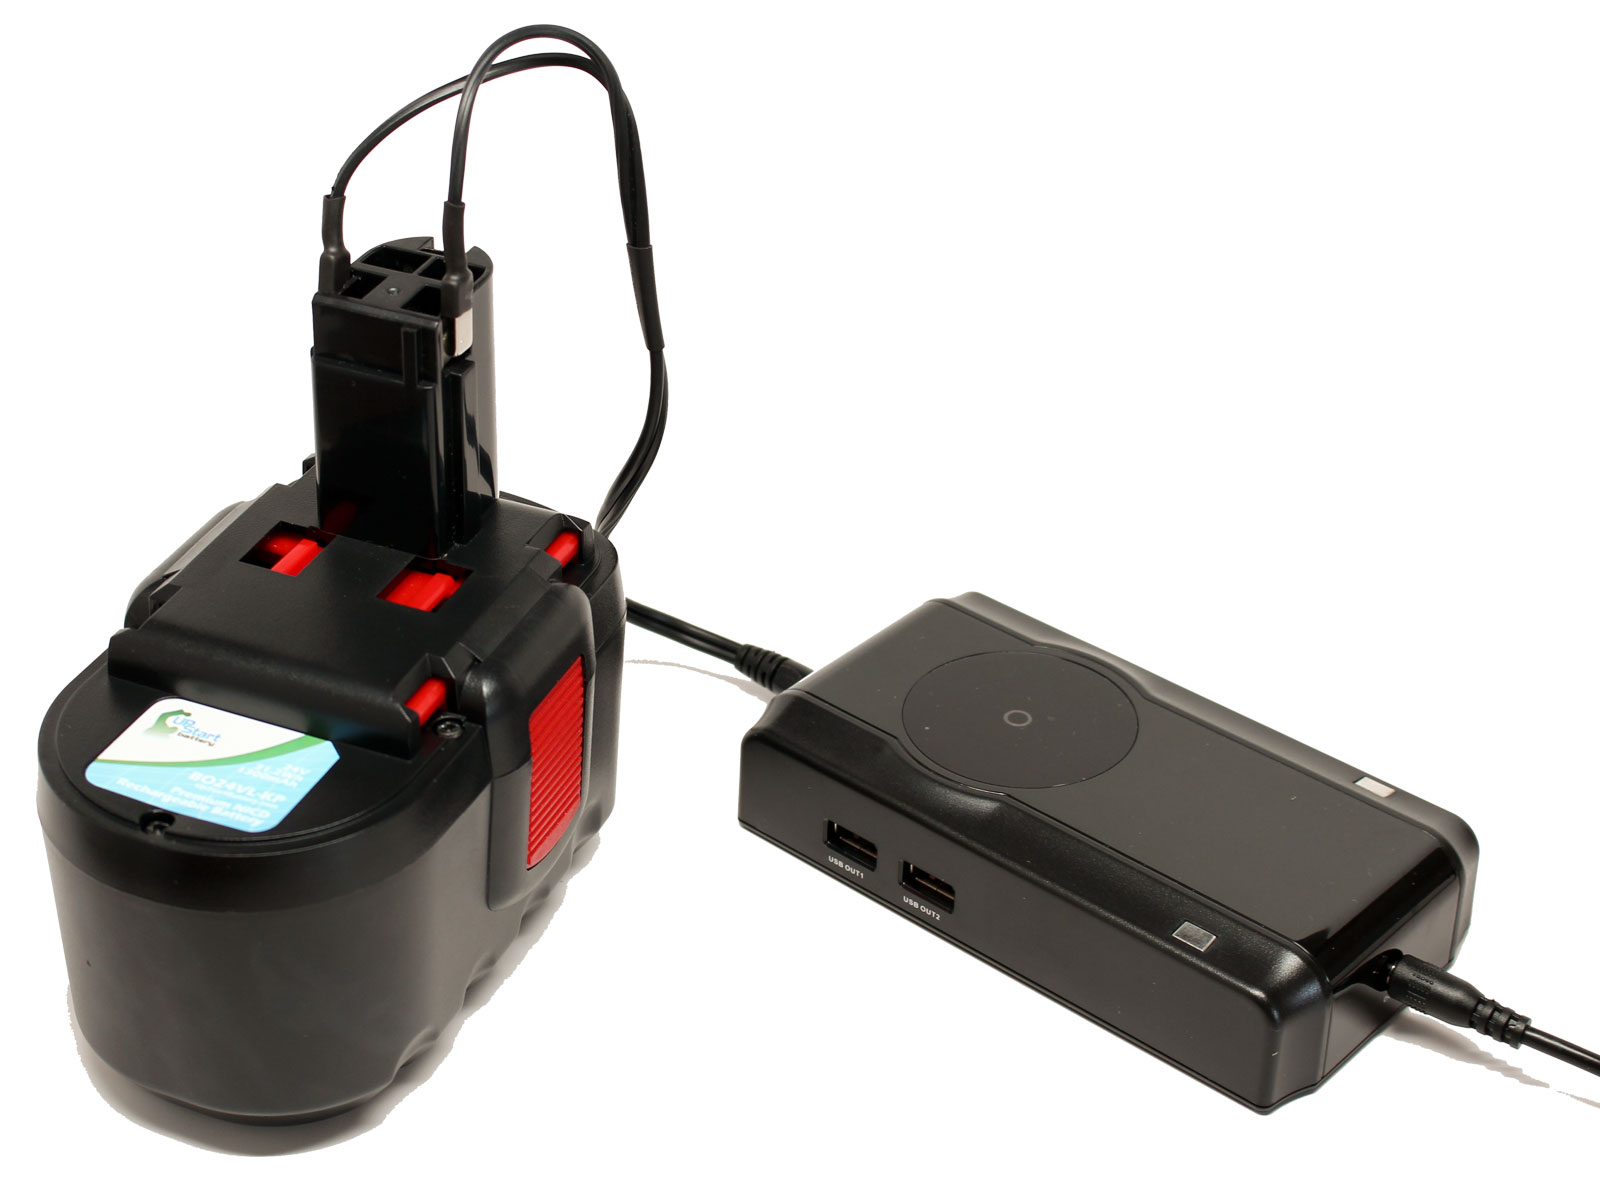 UpStart Battery Bosch GKS24V Battery + Charger - Replacement Bosch 24V Battery and Charger (1300mAh, NICD)